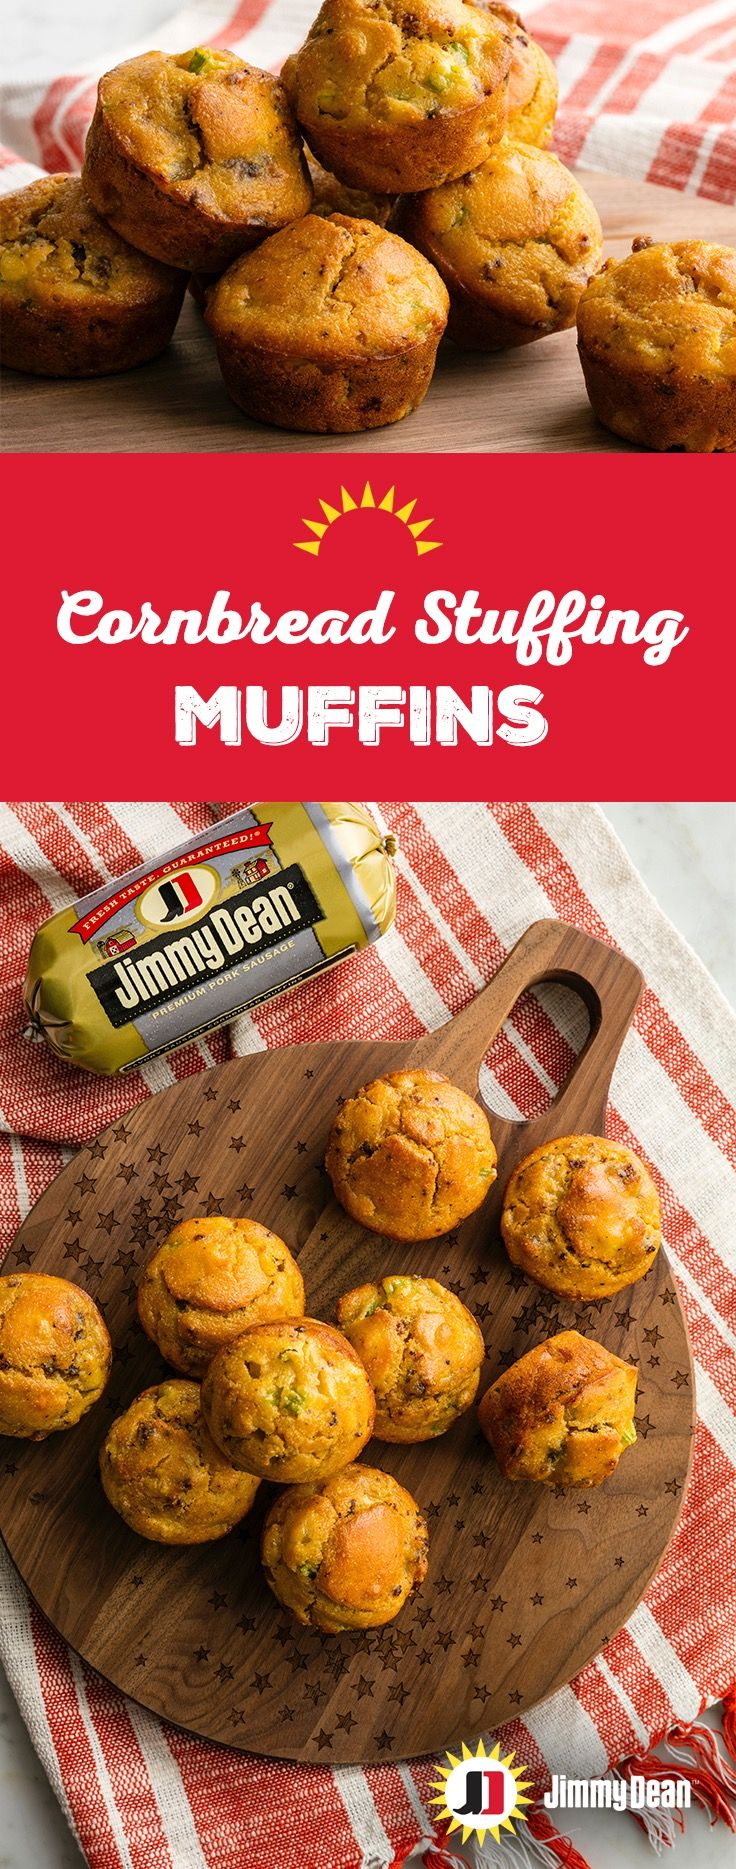 Ditch the serving spoon because it's muffin time. Each Cornbread Stuffing Muffin is like your own serving of stuffing packed with Jimmy Dean Premium Sage Pork Sausage with signature seasonings.